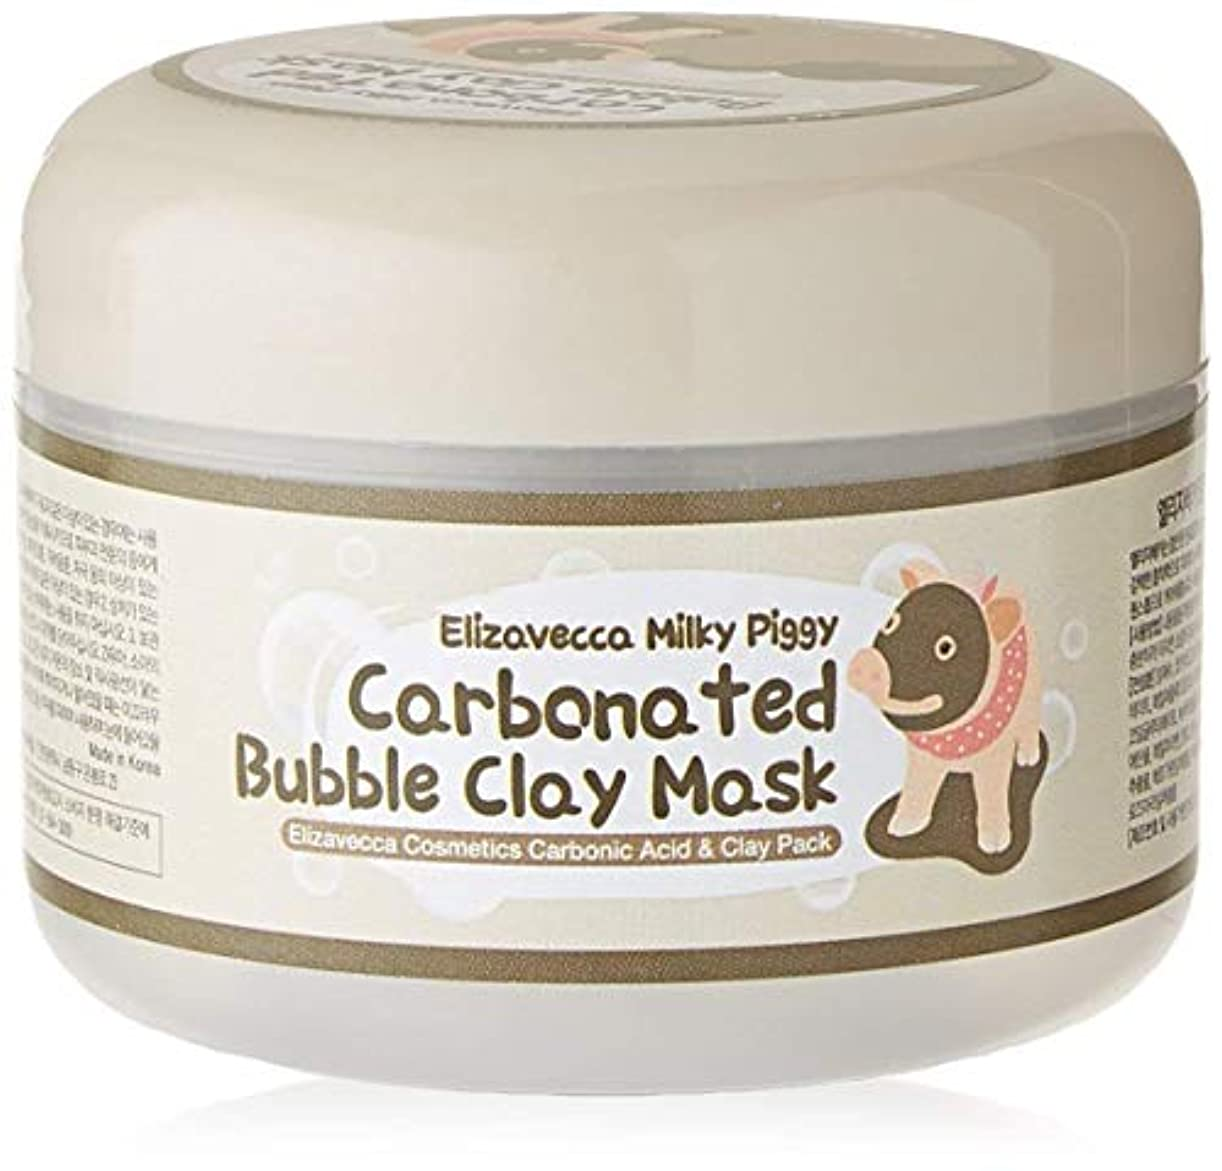 アクセス取得カブElizavecca Milky Piggy Carbonated Bubble Clay Mask 100g